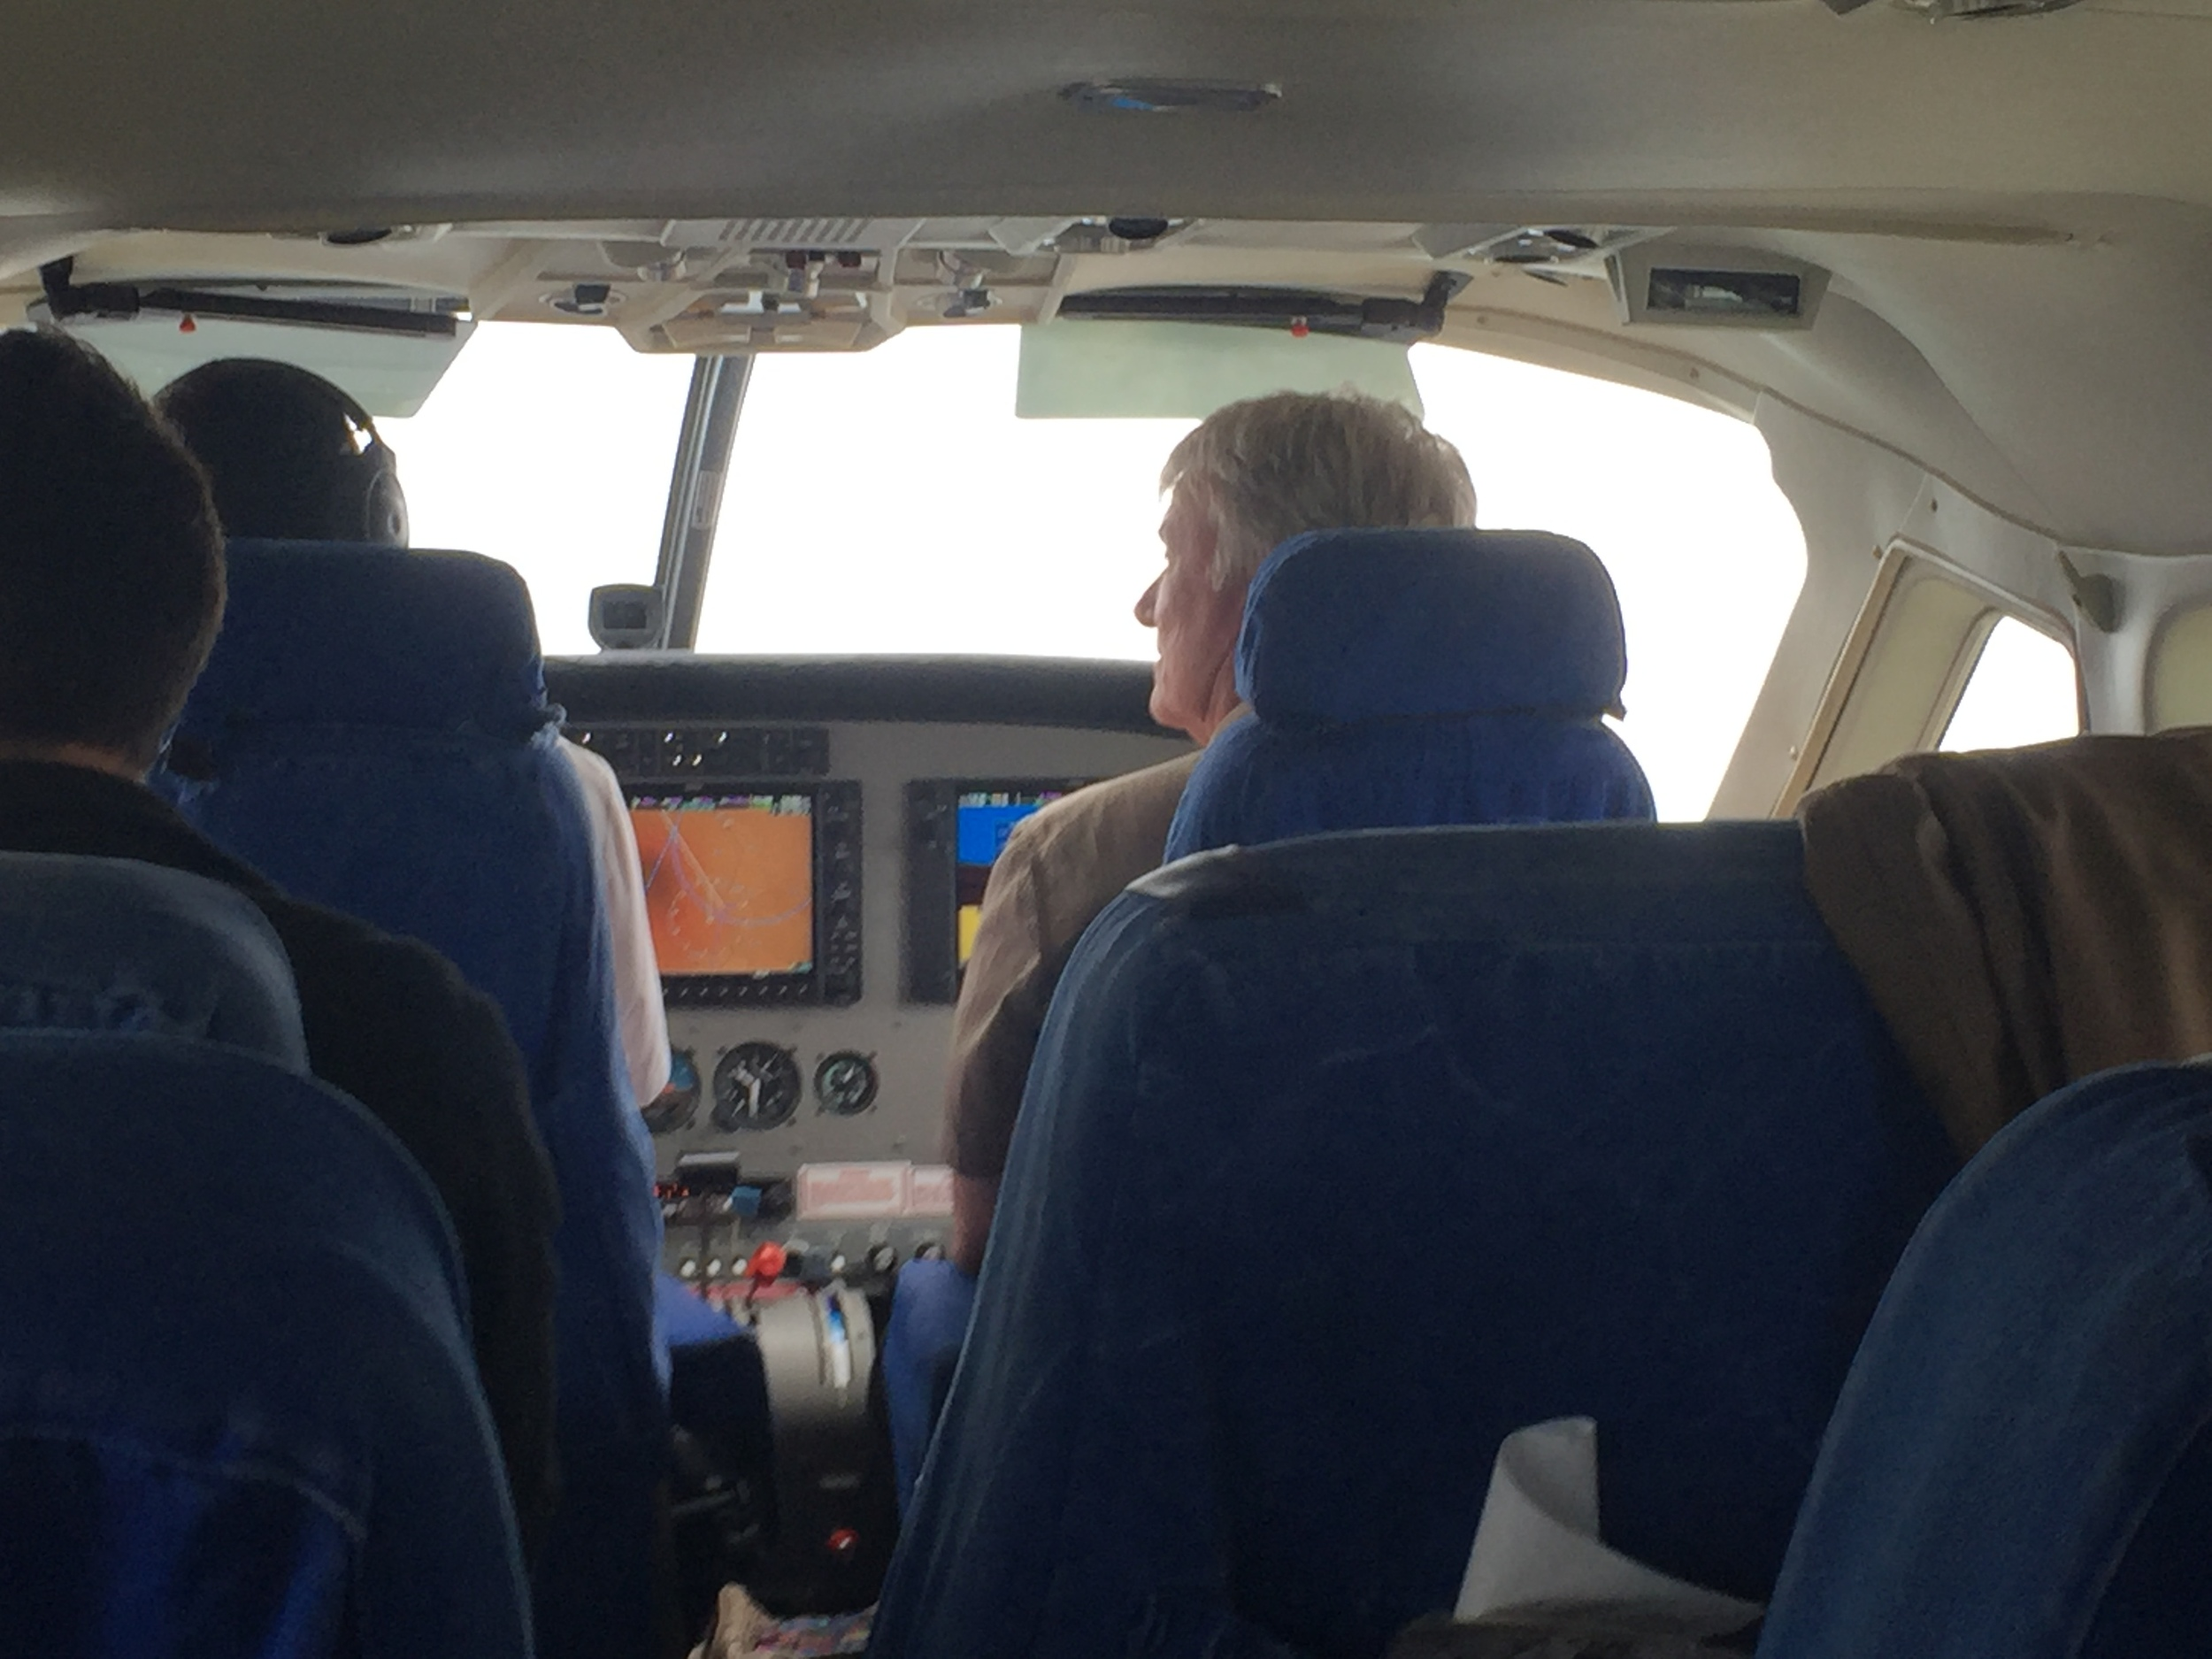 Our very own Dr. Ed (I've nicknamed him Maverick) co-piloting our flight back to Nairobi. Nice to have someone on the team that could actually fly the plane if need be :)